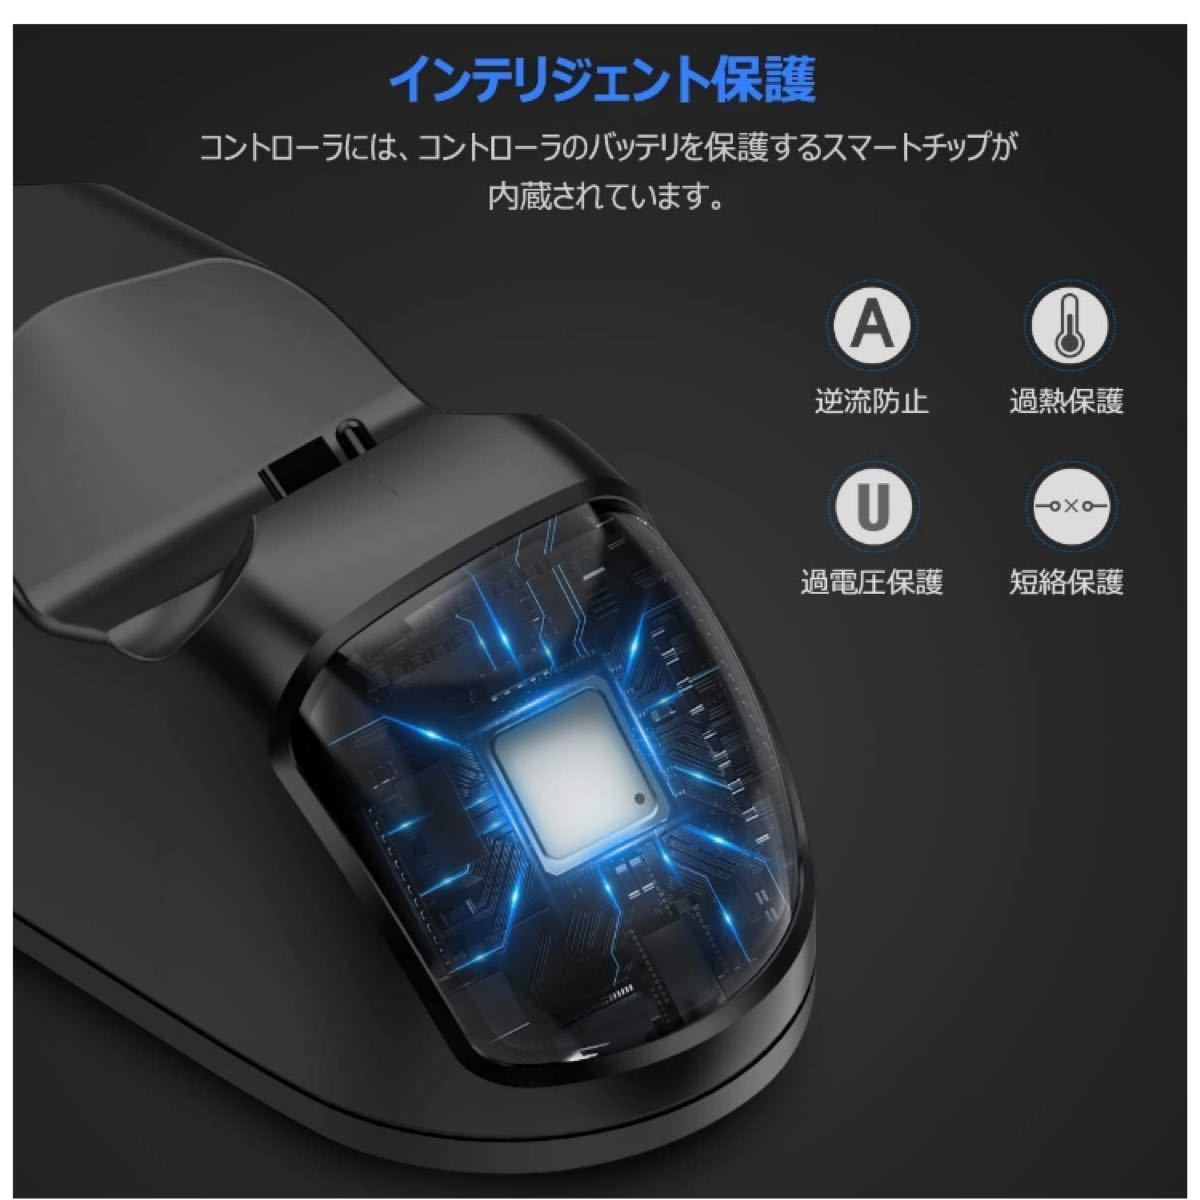 PS4 コントローラー 充電器